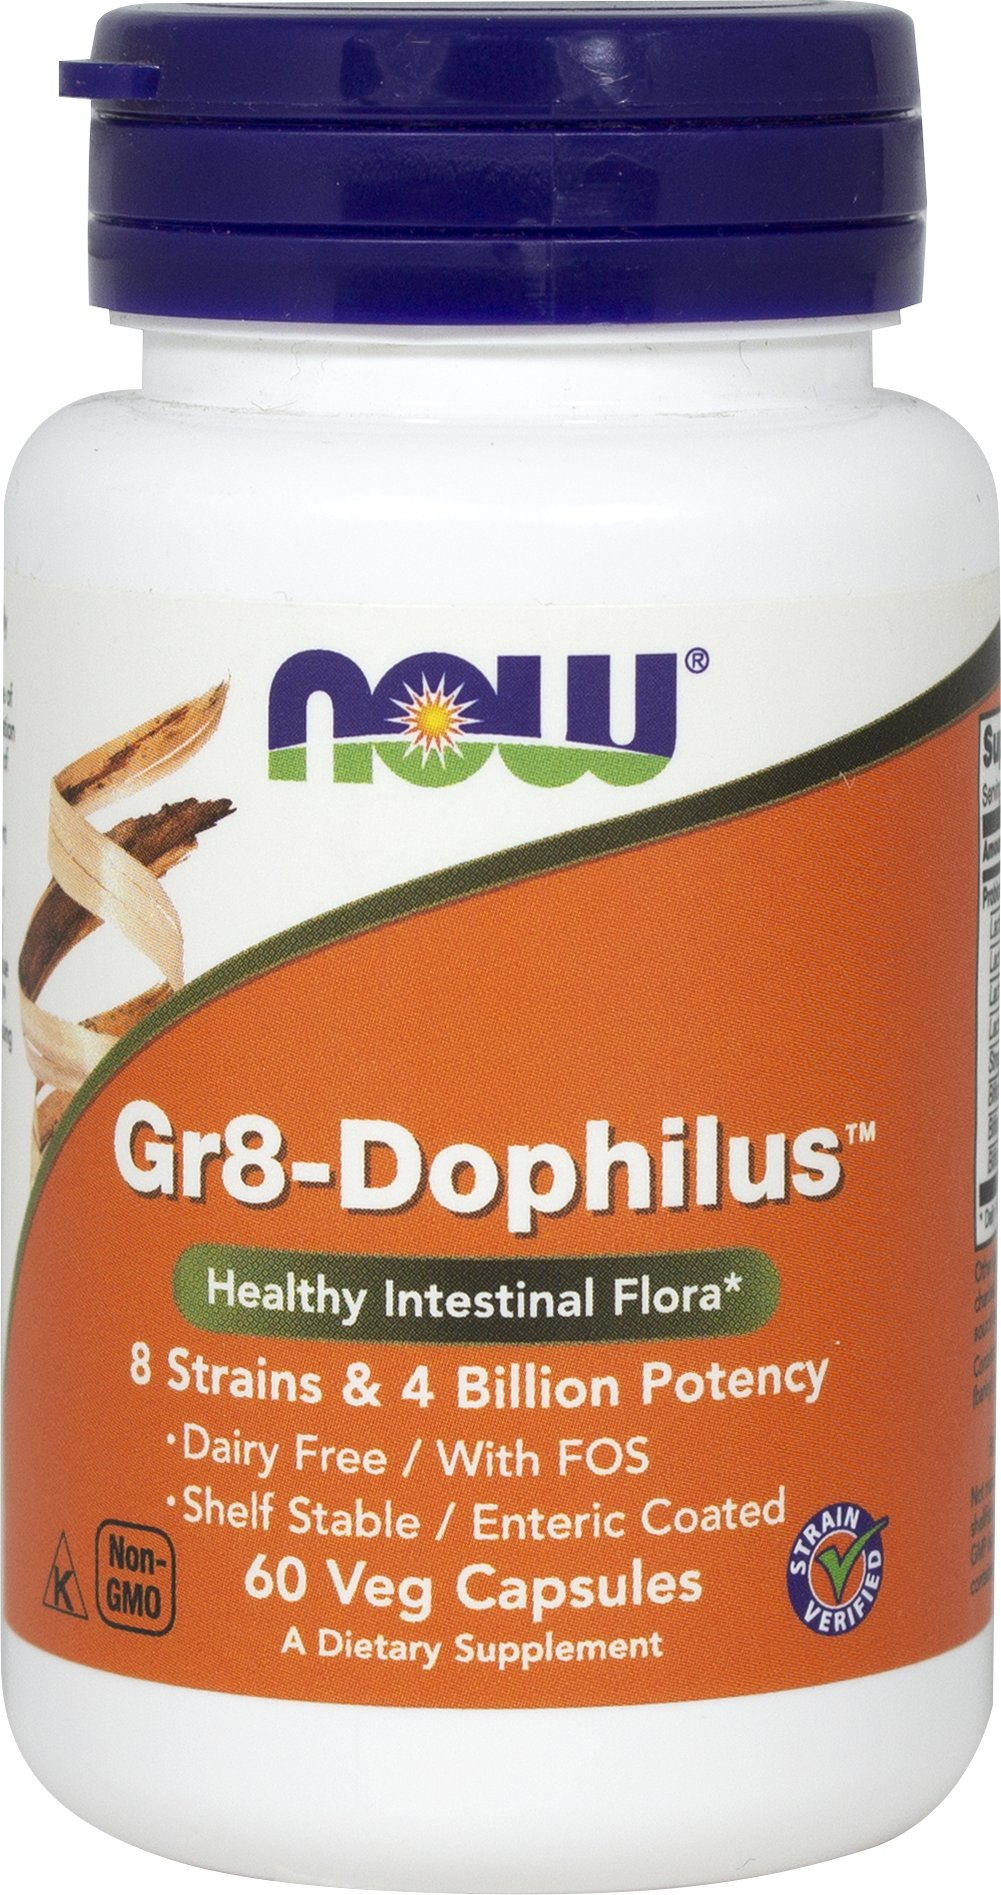 Gr8-Dophilus™ Thumbnail Alternate Bottle View